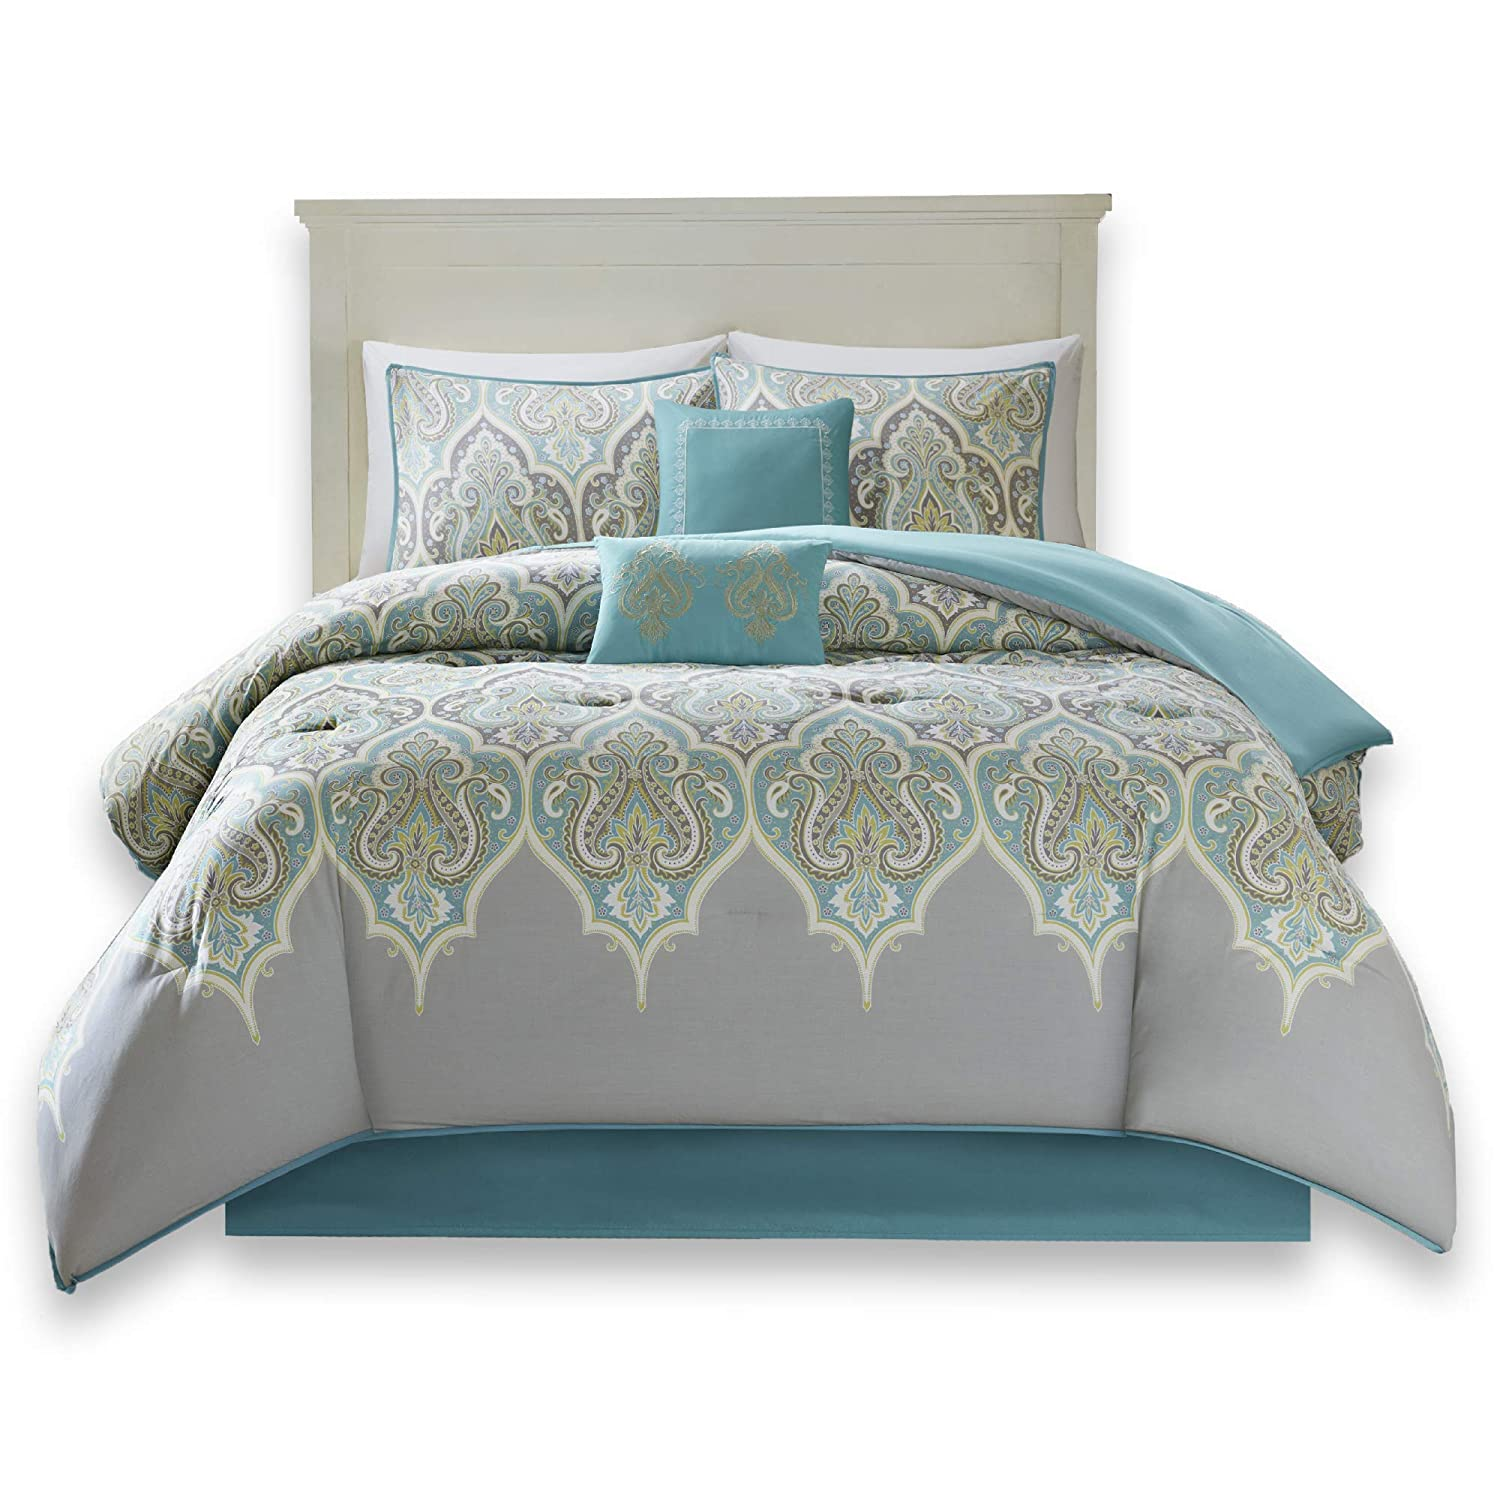 Comfort Spaces - Mona Cotton Printed Comforter Set - 6 Piece - Teal Grey - Paisley Design - Queen Size, Includes 1 Comforter, 2 Shams, 1 Bedskirt, 2 Embroidered Decorative Pillows